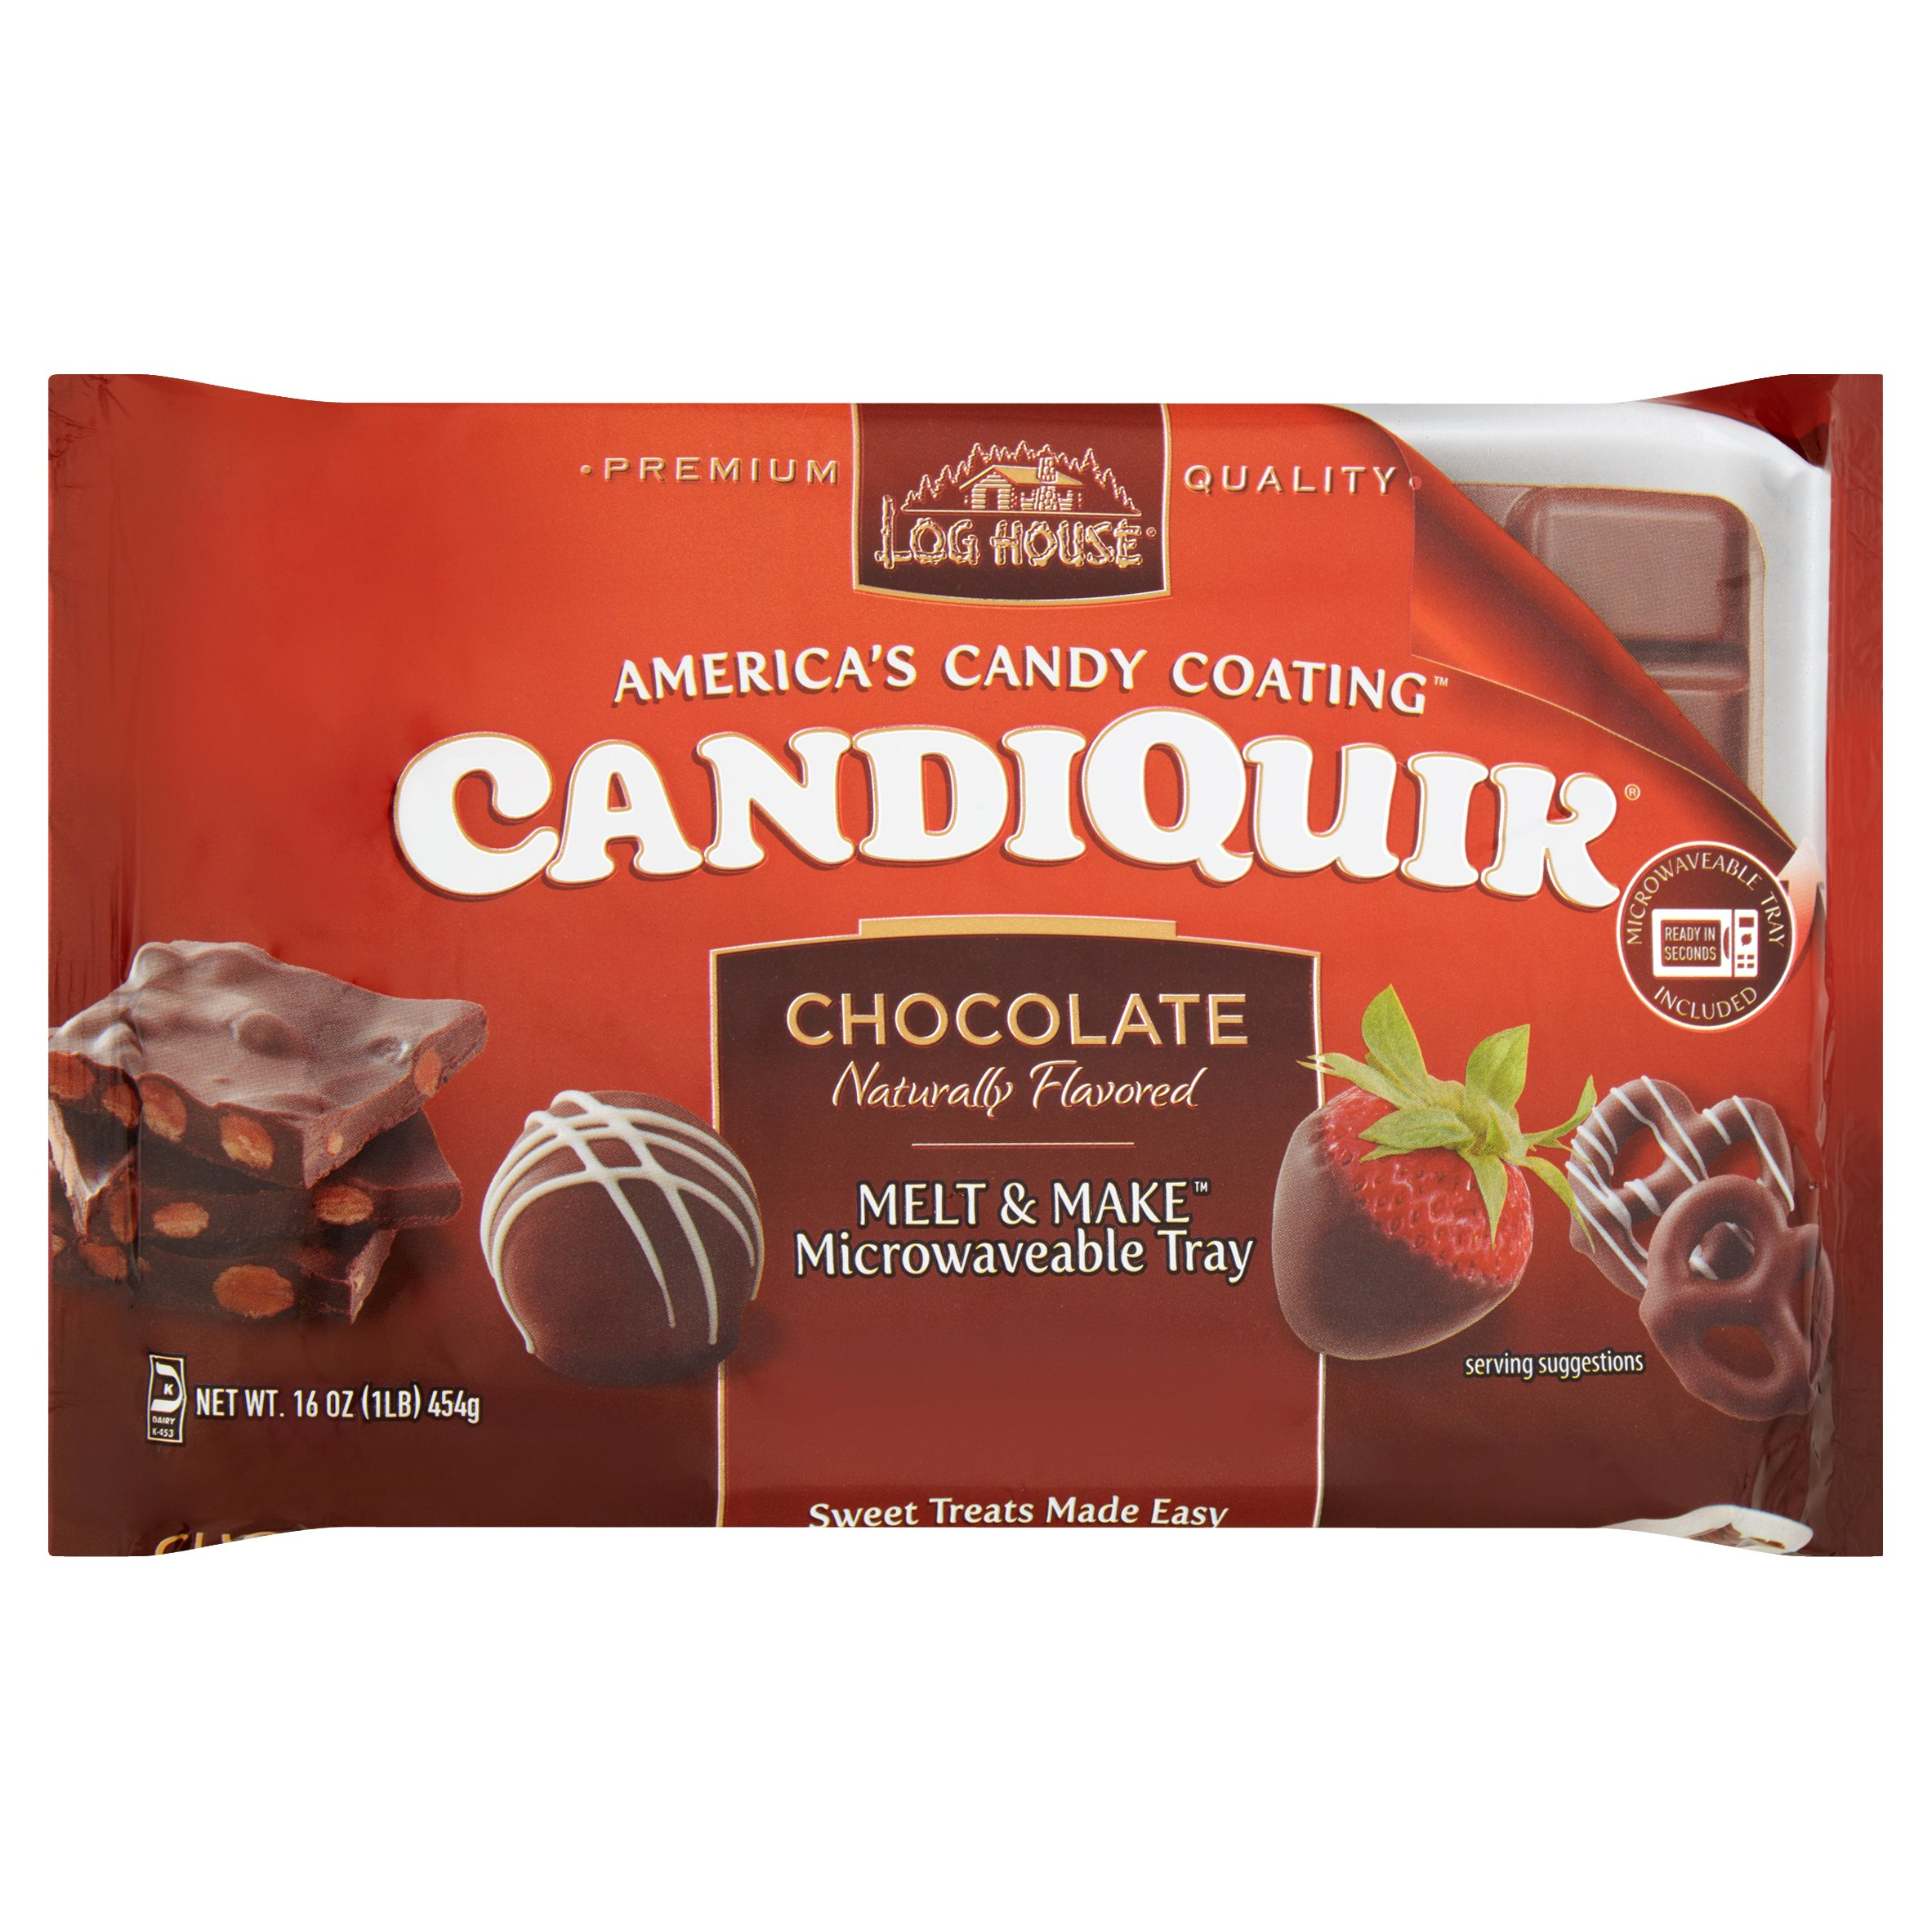 Candiquik Chocolate Baking Bar, 16 oz by Log House Foods